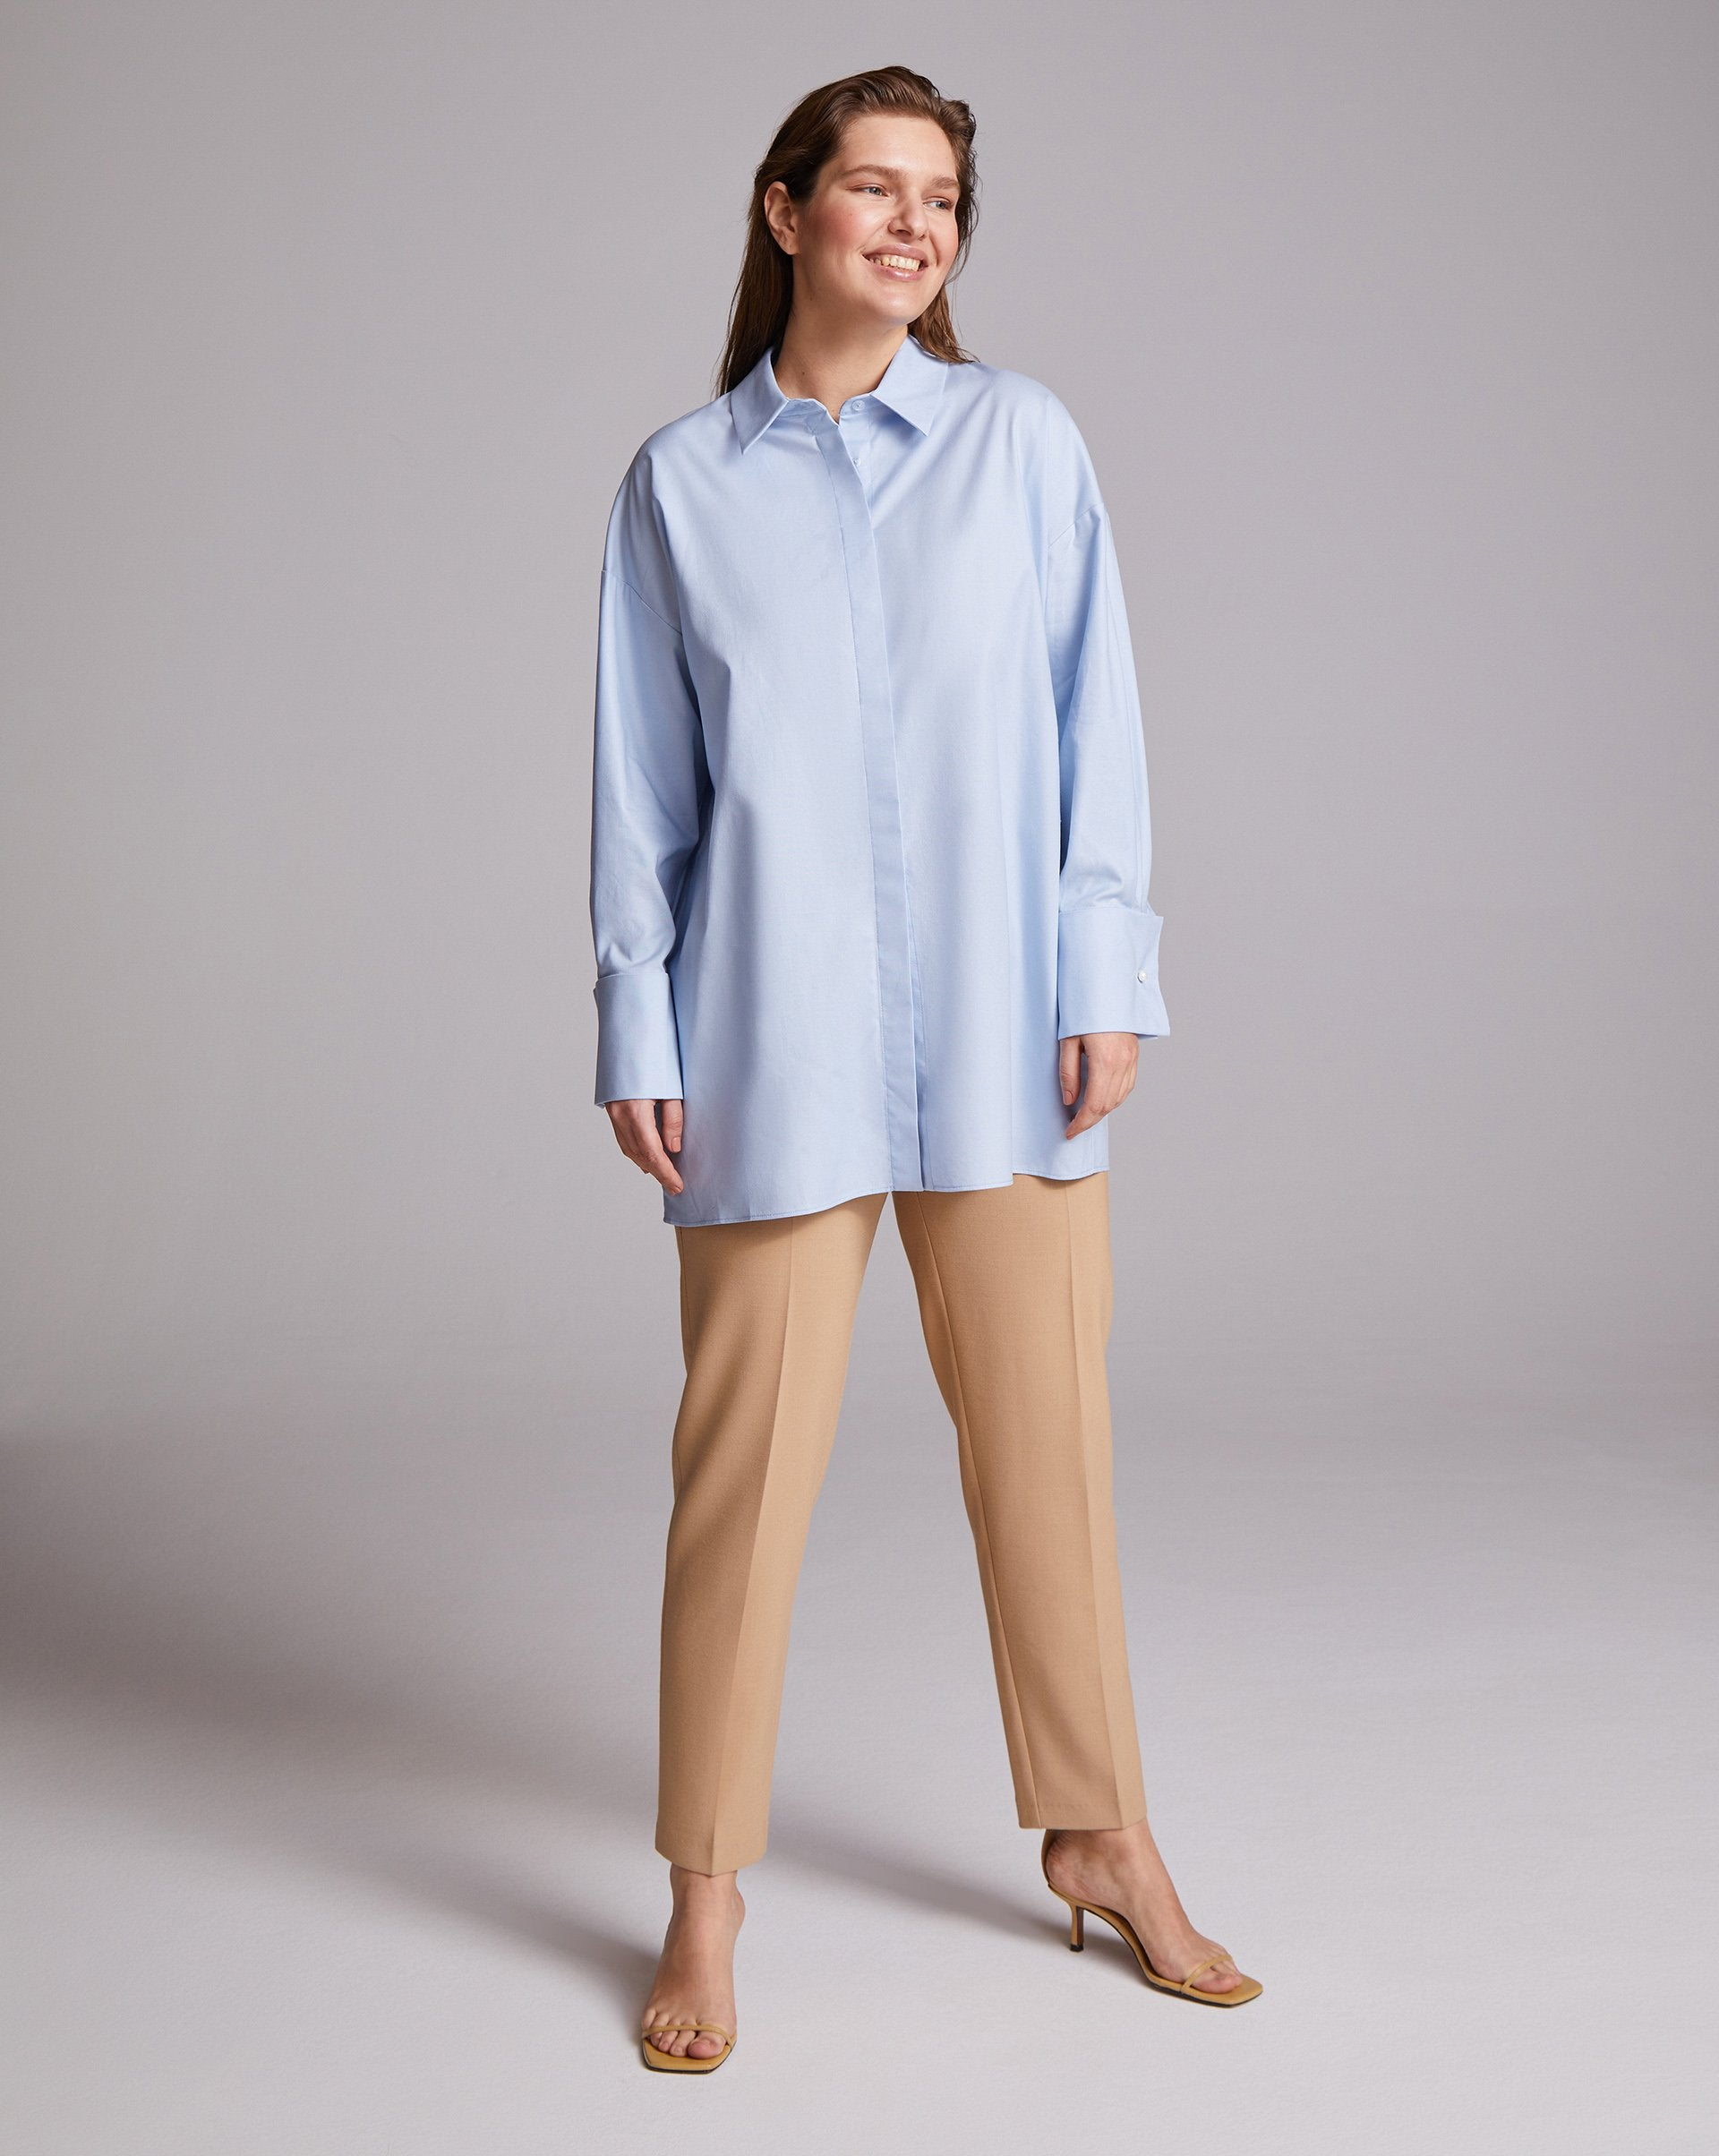 Wide-cuff oversized button up shirt - 12 STOREEZ